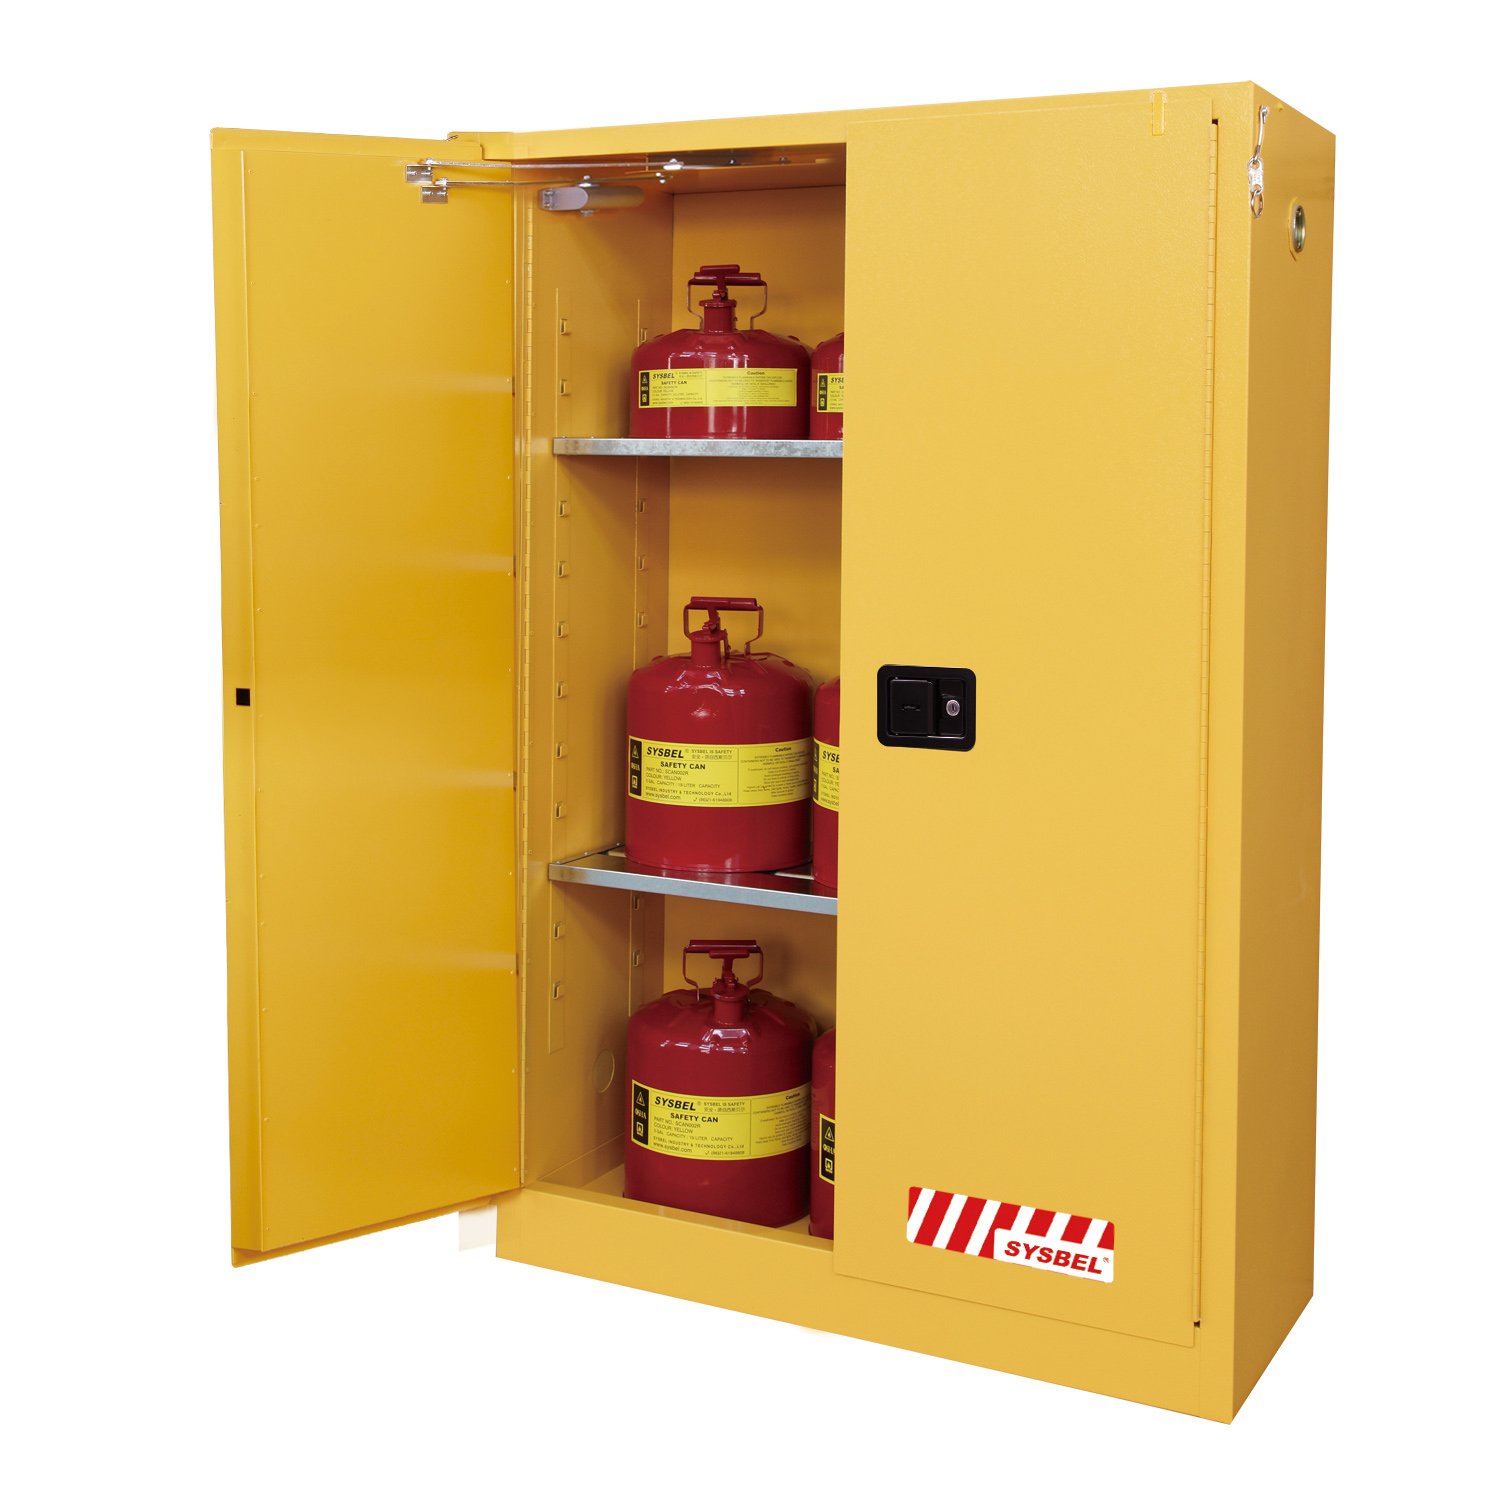 Superb SD45170F U2013 170L SYSBEL Flammable Cabinet (Self Closing)